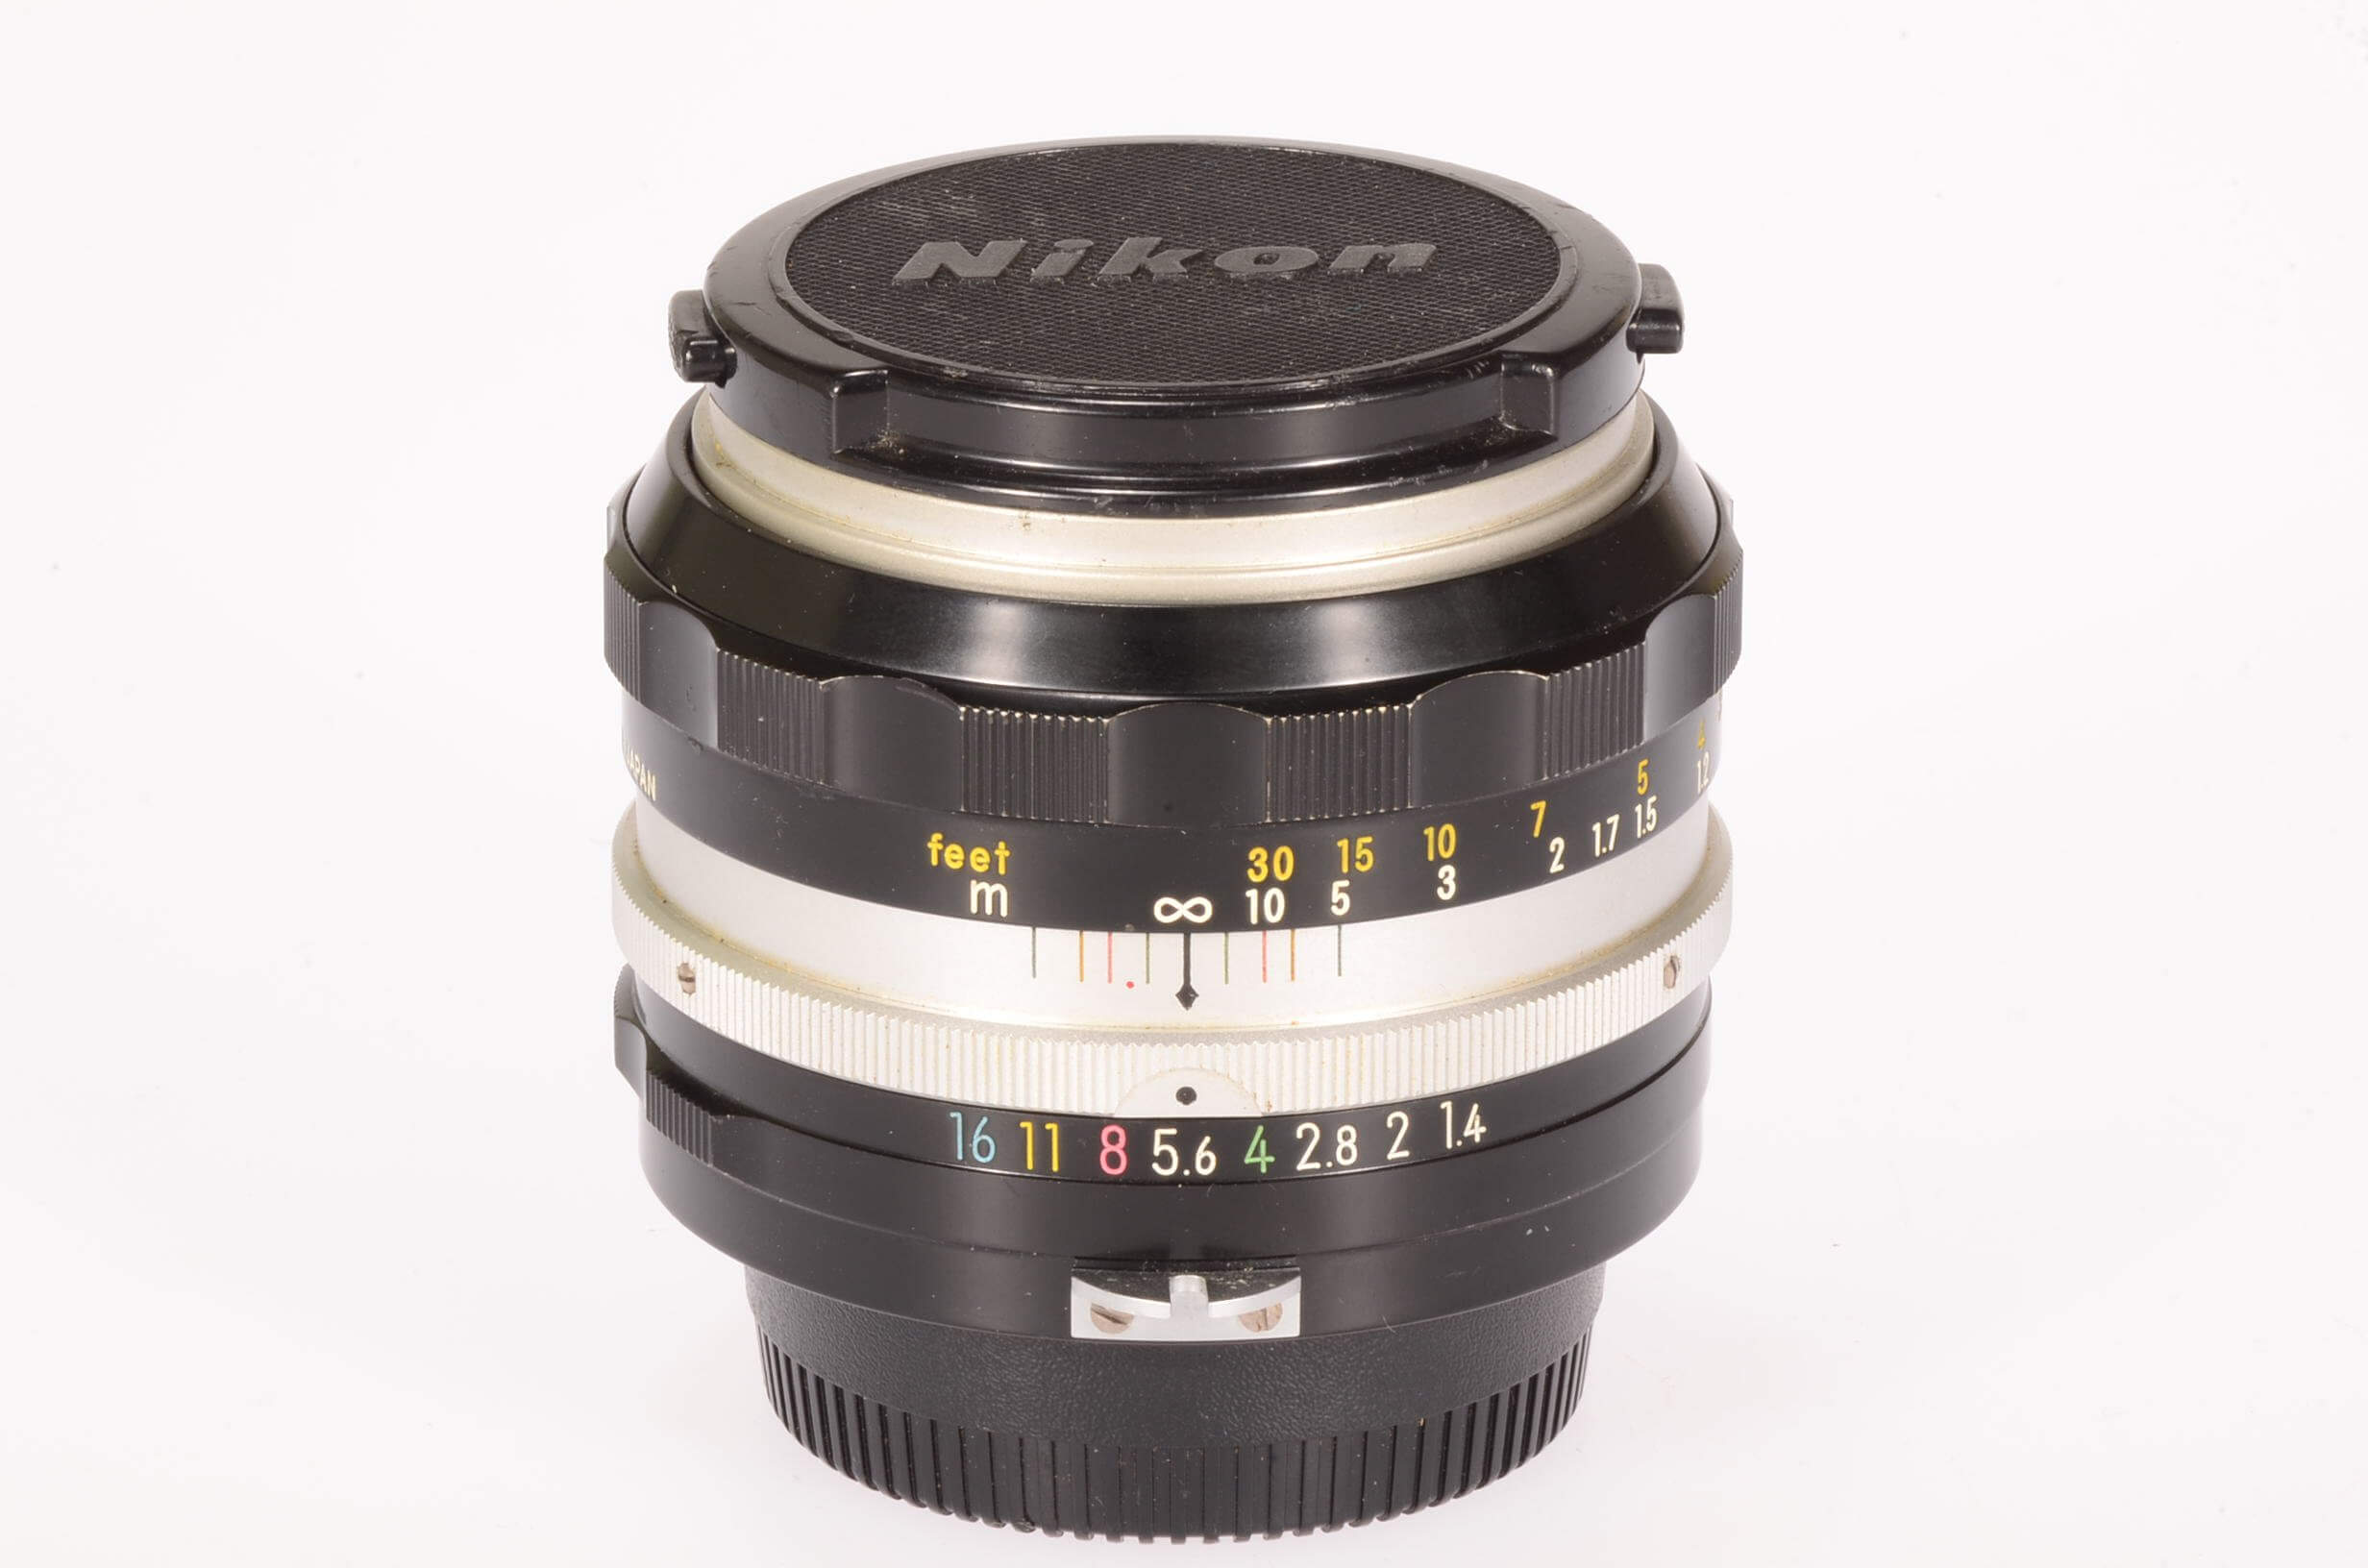 Nikon 50mm f1.4 Nikkor, pre AI, serviced, superb condition!